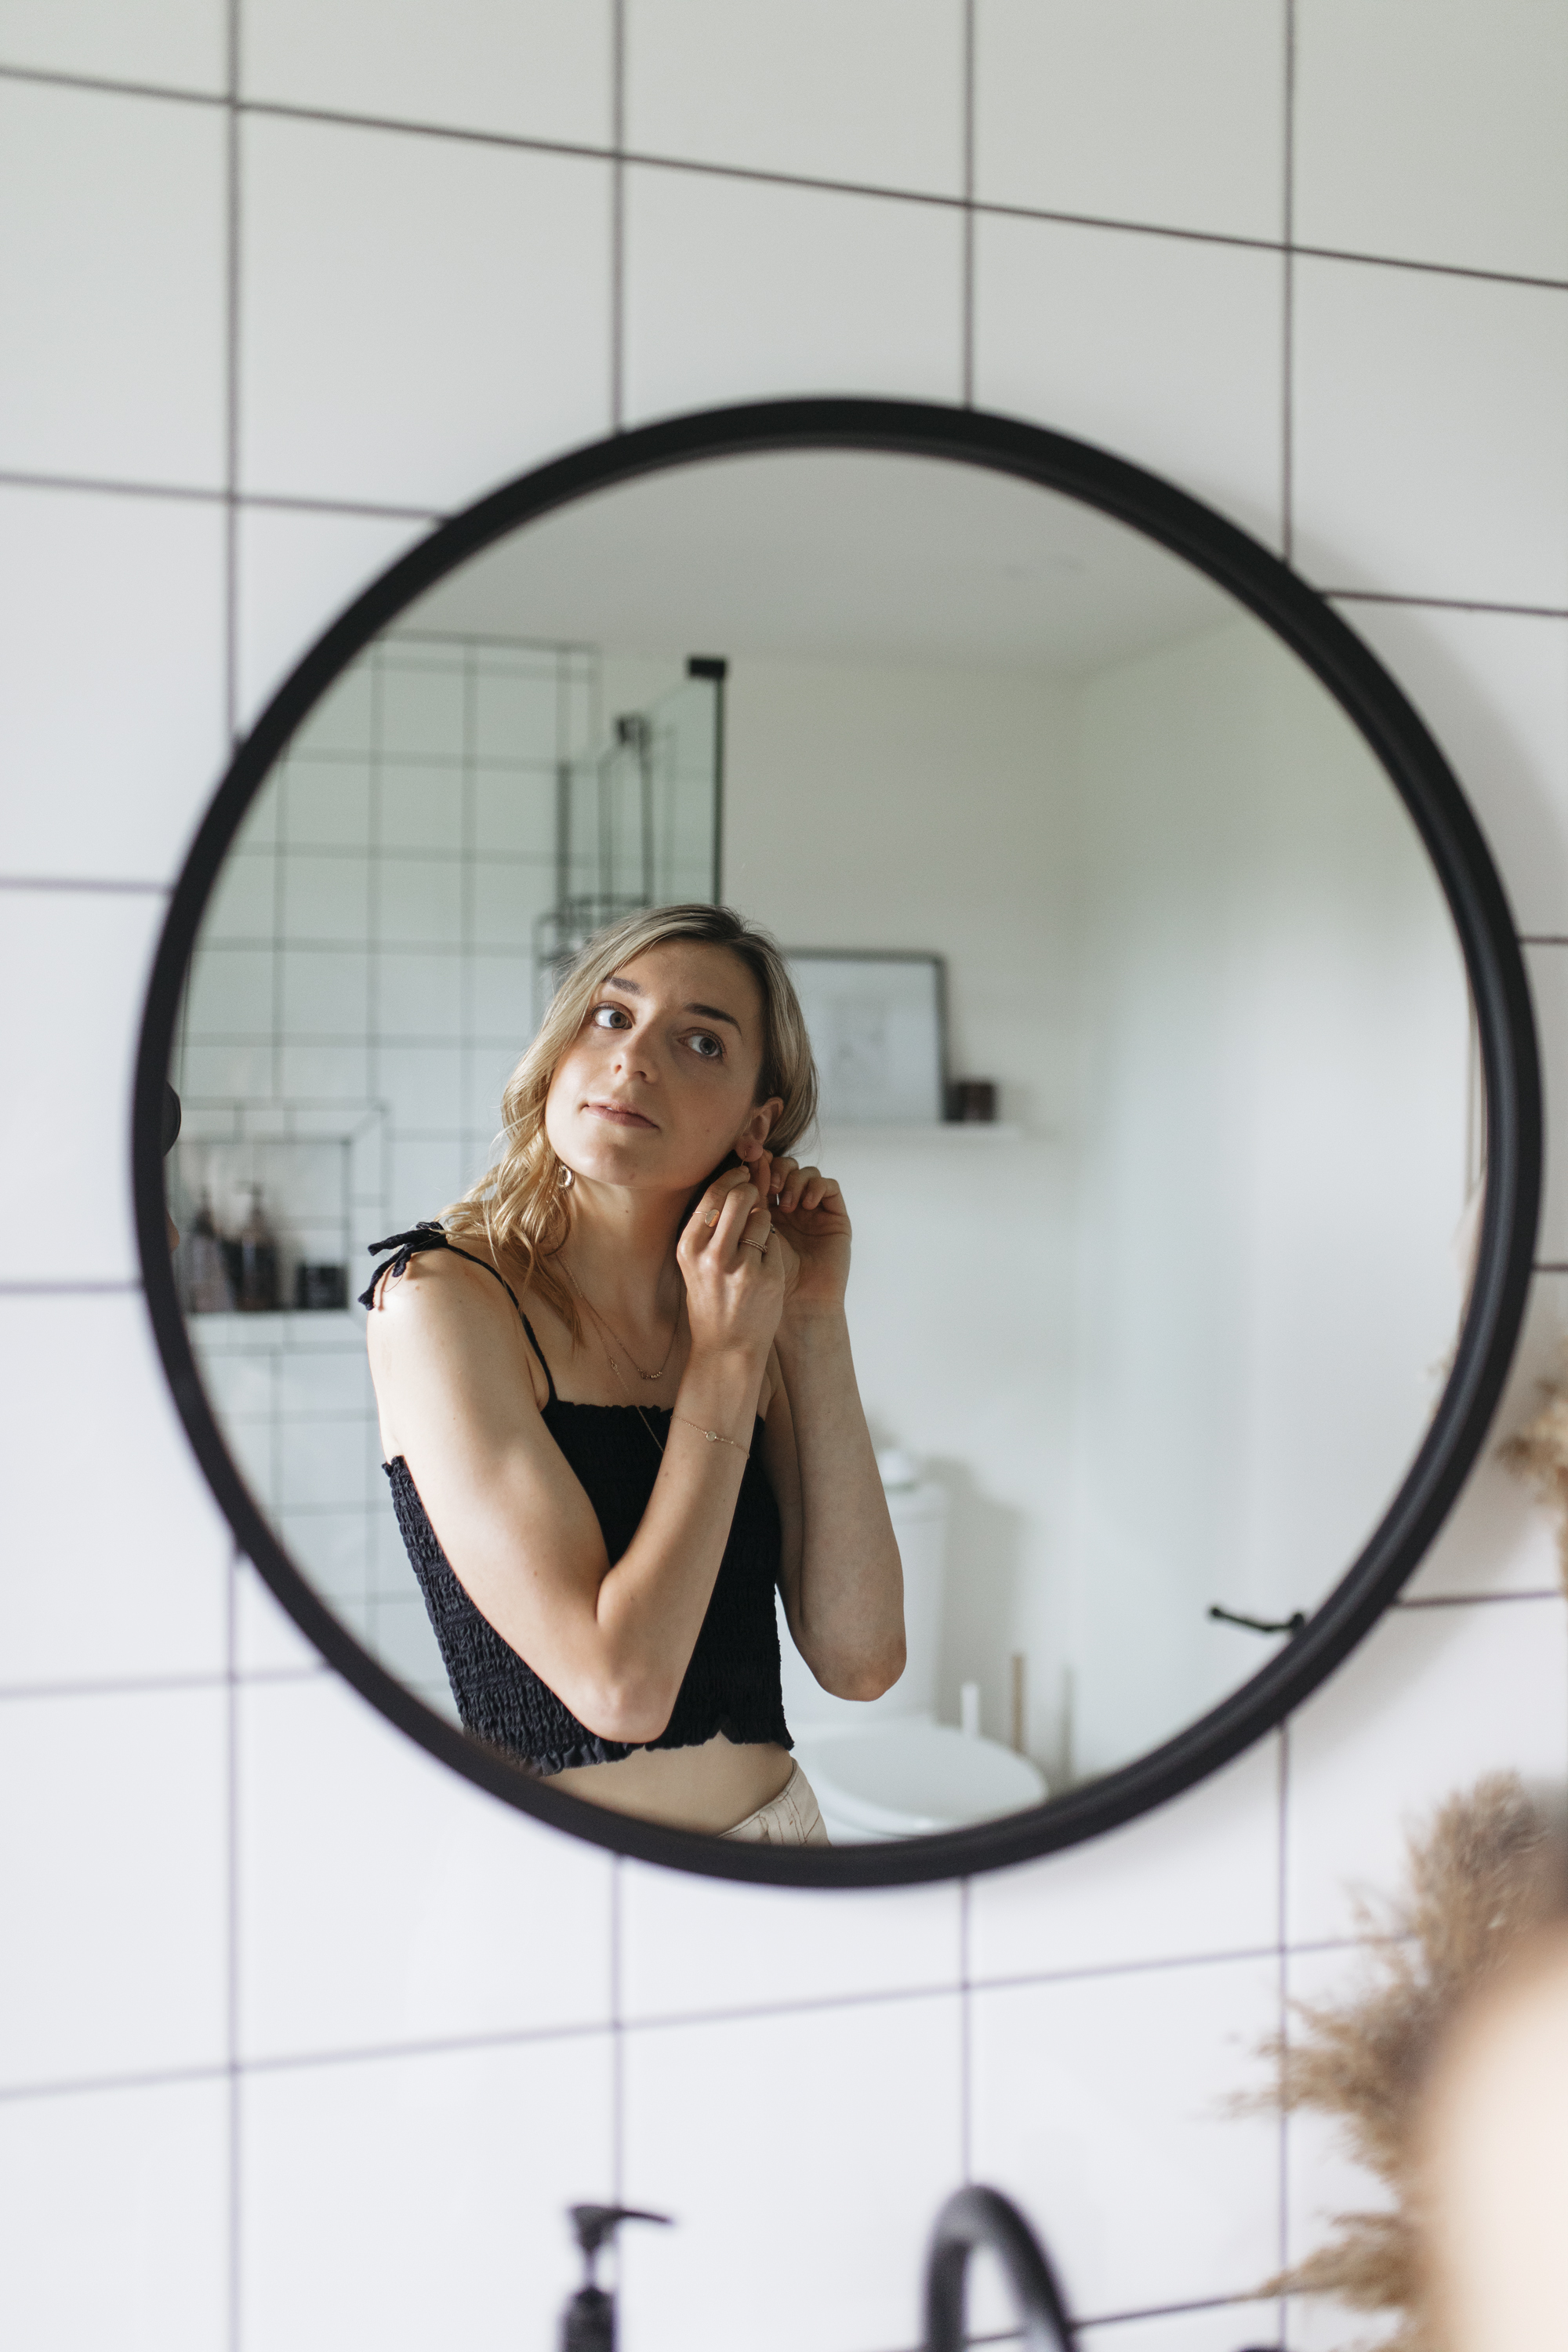 spend time in the morning giving yourself positive self talk, or mirror talk, to get some me time and self care in before you bring the day according to lifestyle blogger emily r hess. you glow, girl!